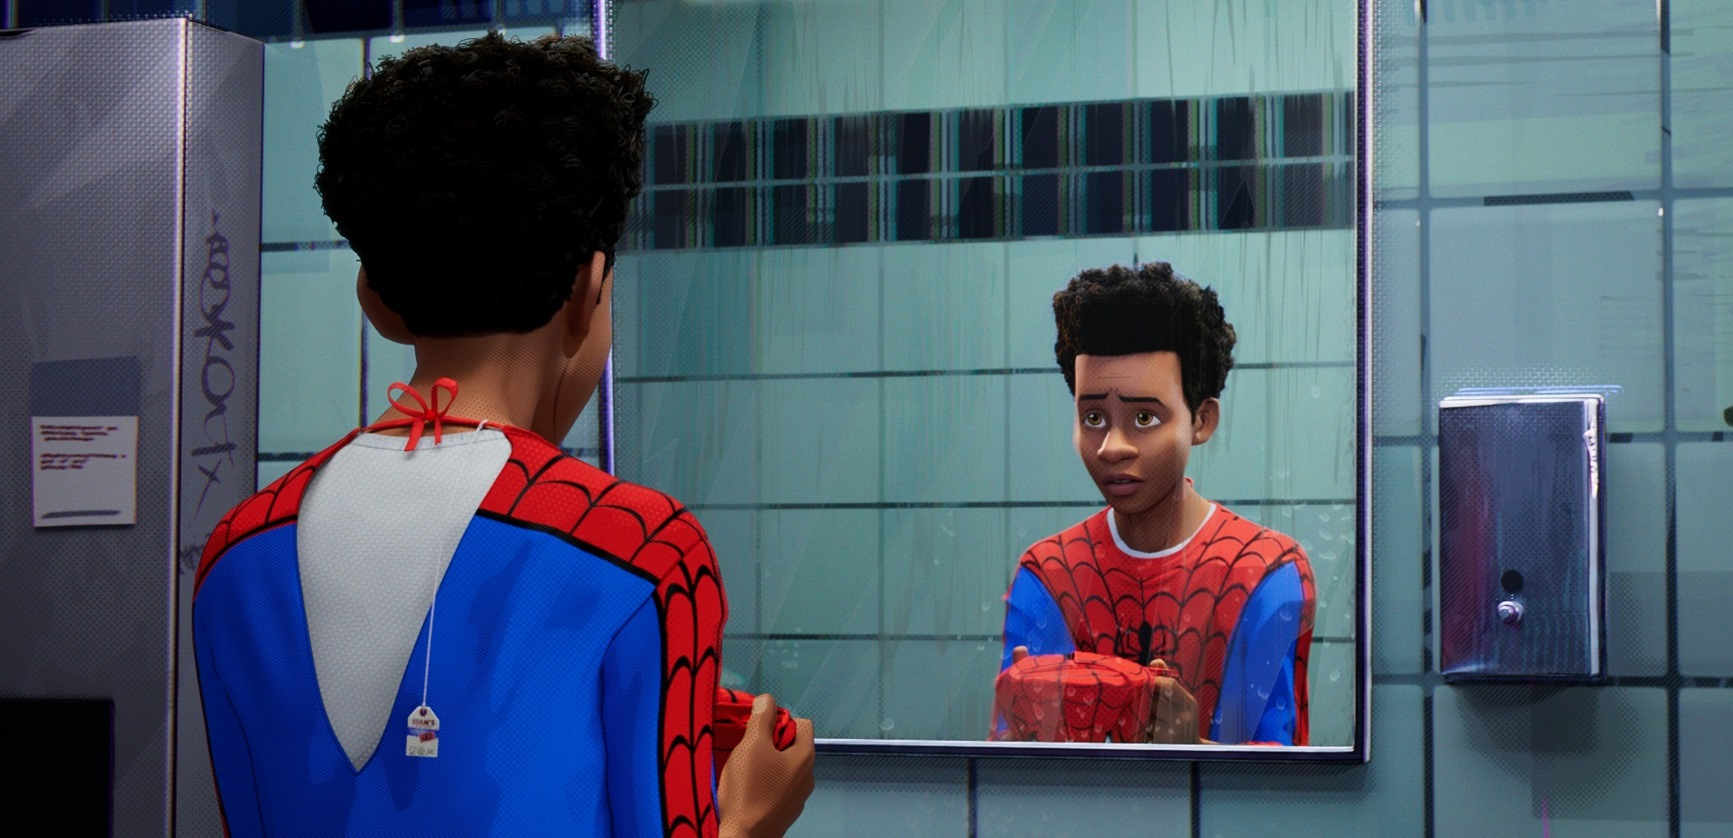 Miles Morales (voiced by Shameik Moore), inheritor of the Spider-Man costume in Spider-Man: Into the Spider-Verse (2018)